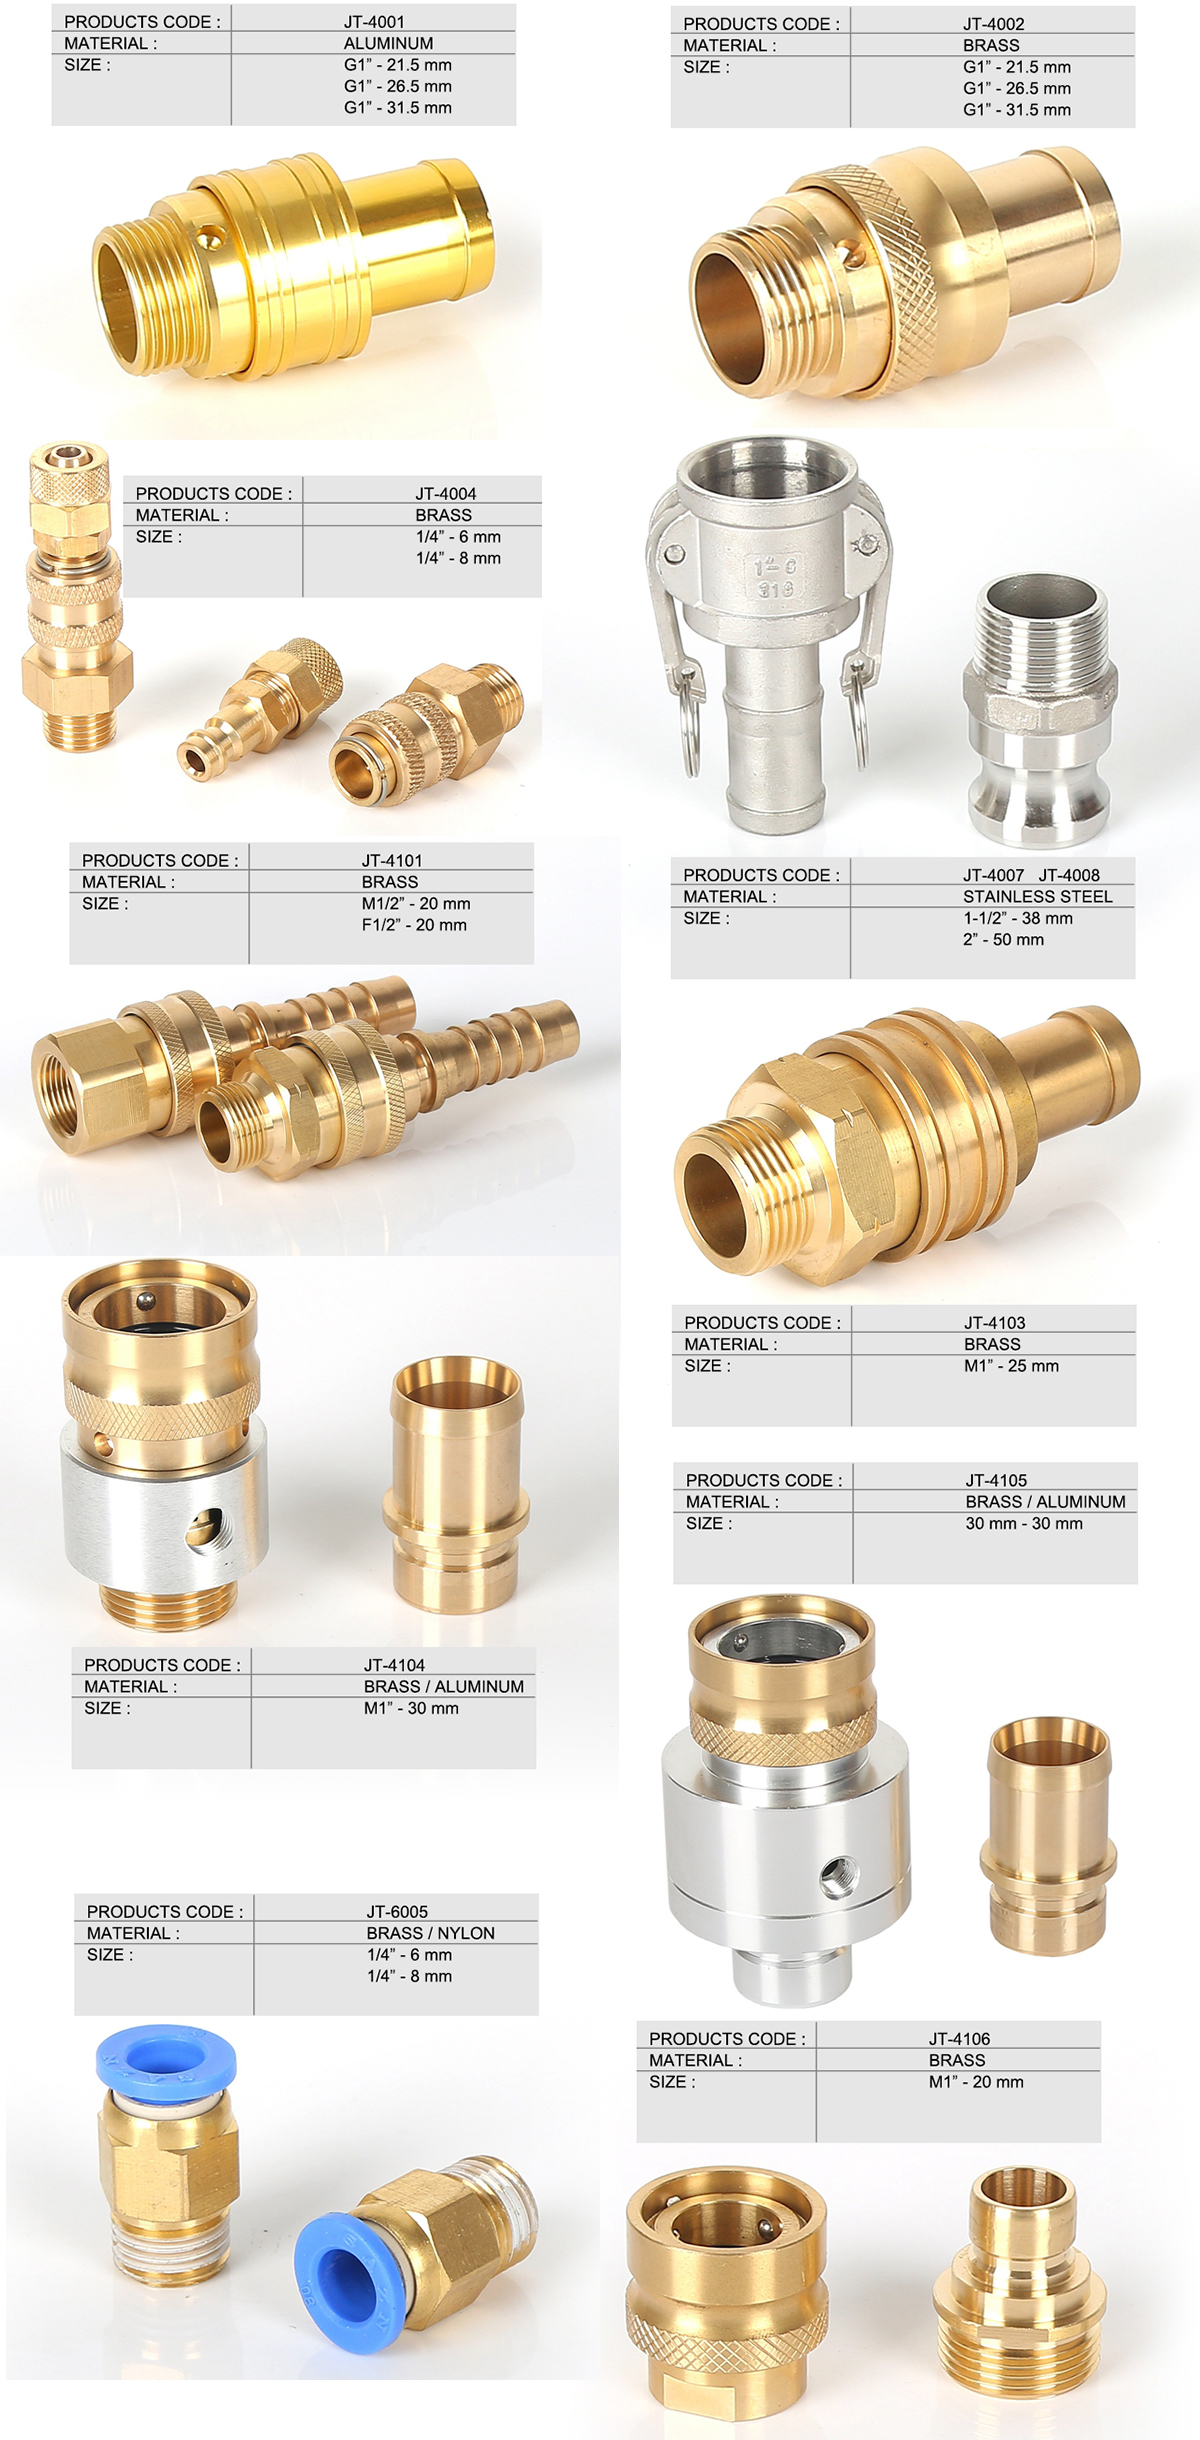 Factory wholesale french coupling quick coupling fittings water hose quick connector